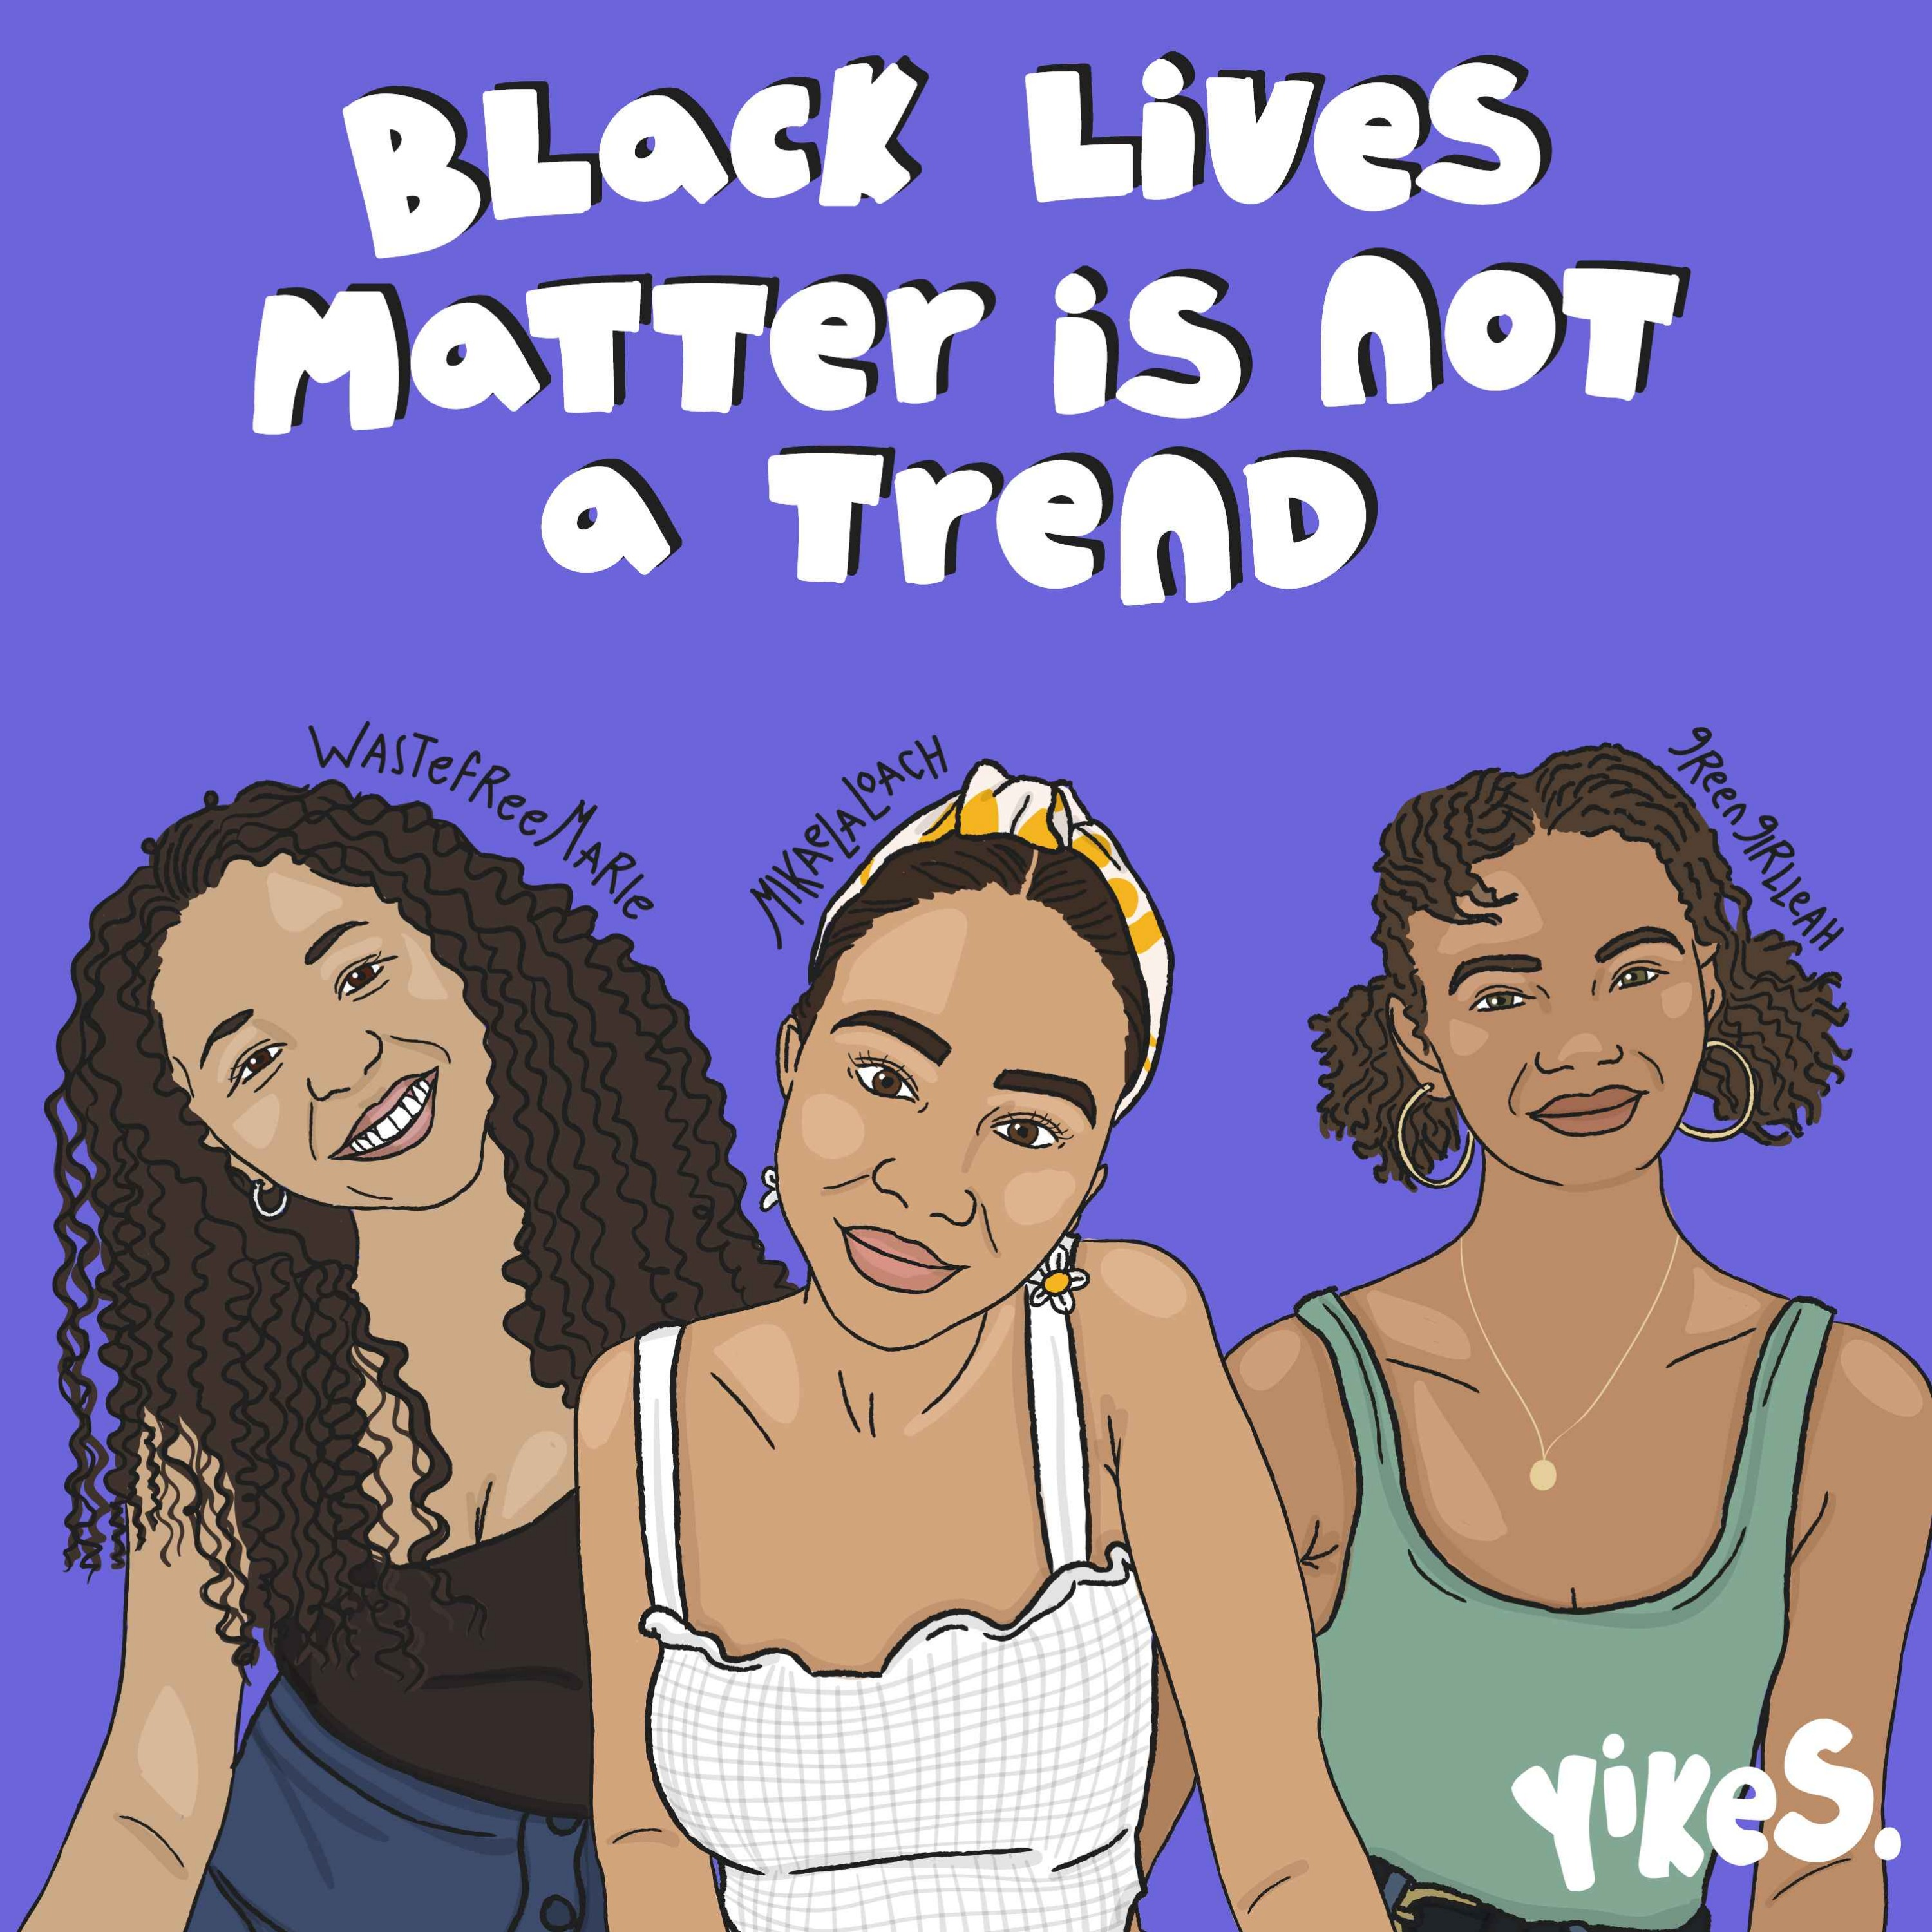 EPISODE 16: Black Lives Matter is Still Not a Trend (feat. Leah Thomas and Marie Beecham)